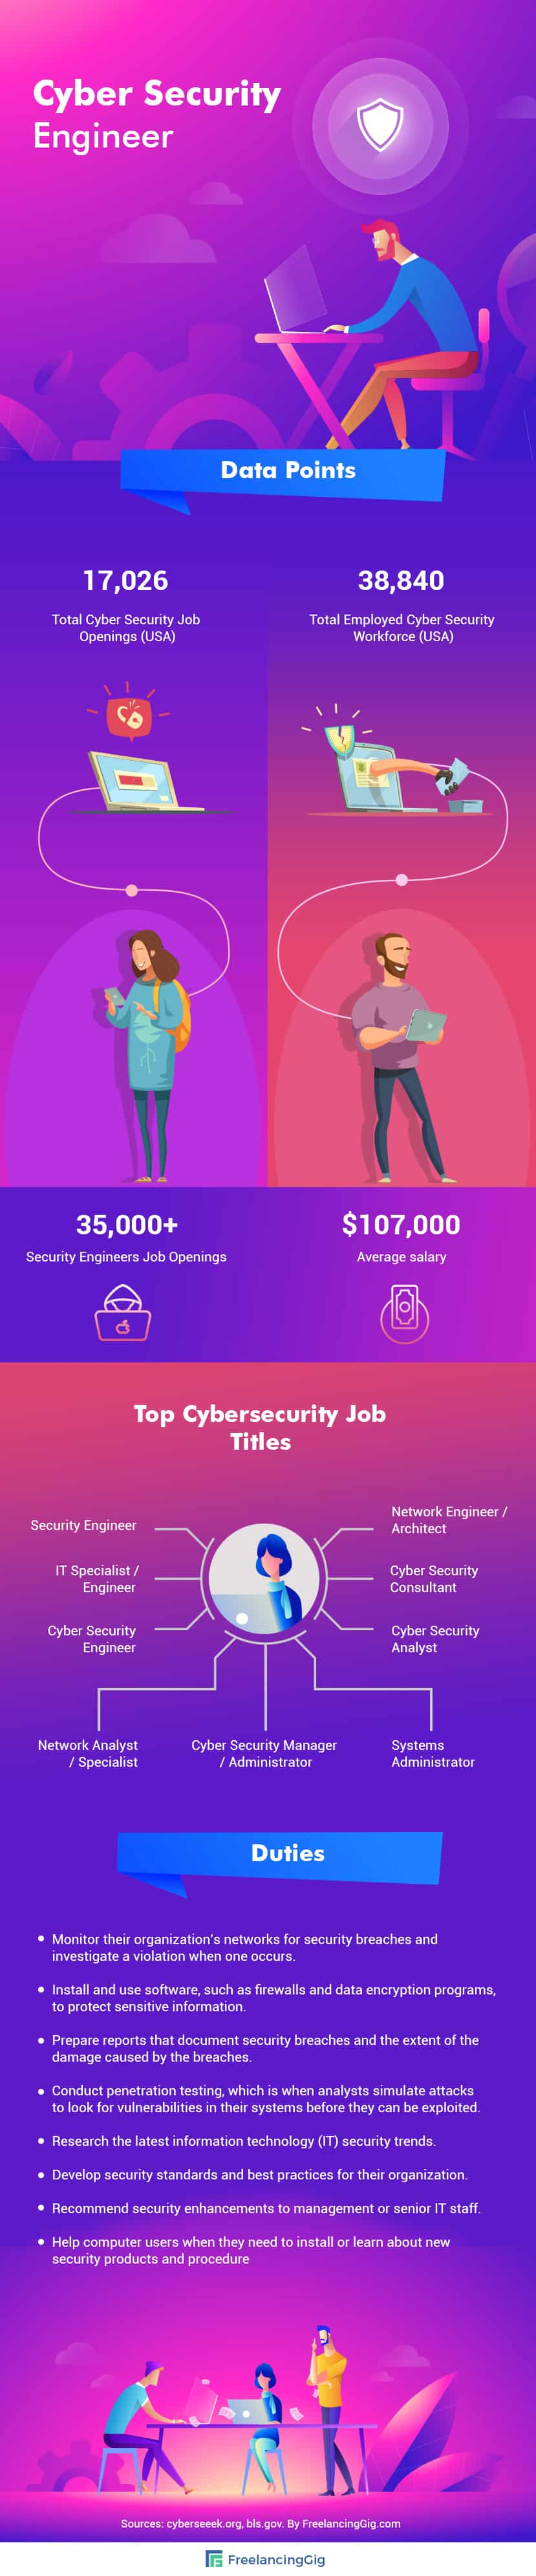 Cyber Security Engineer Infographic